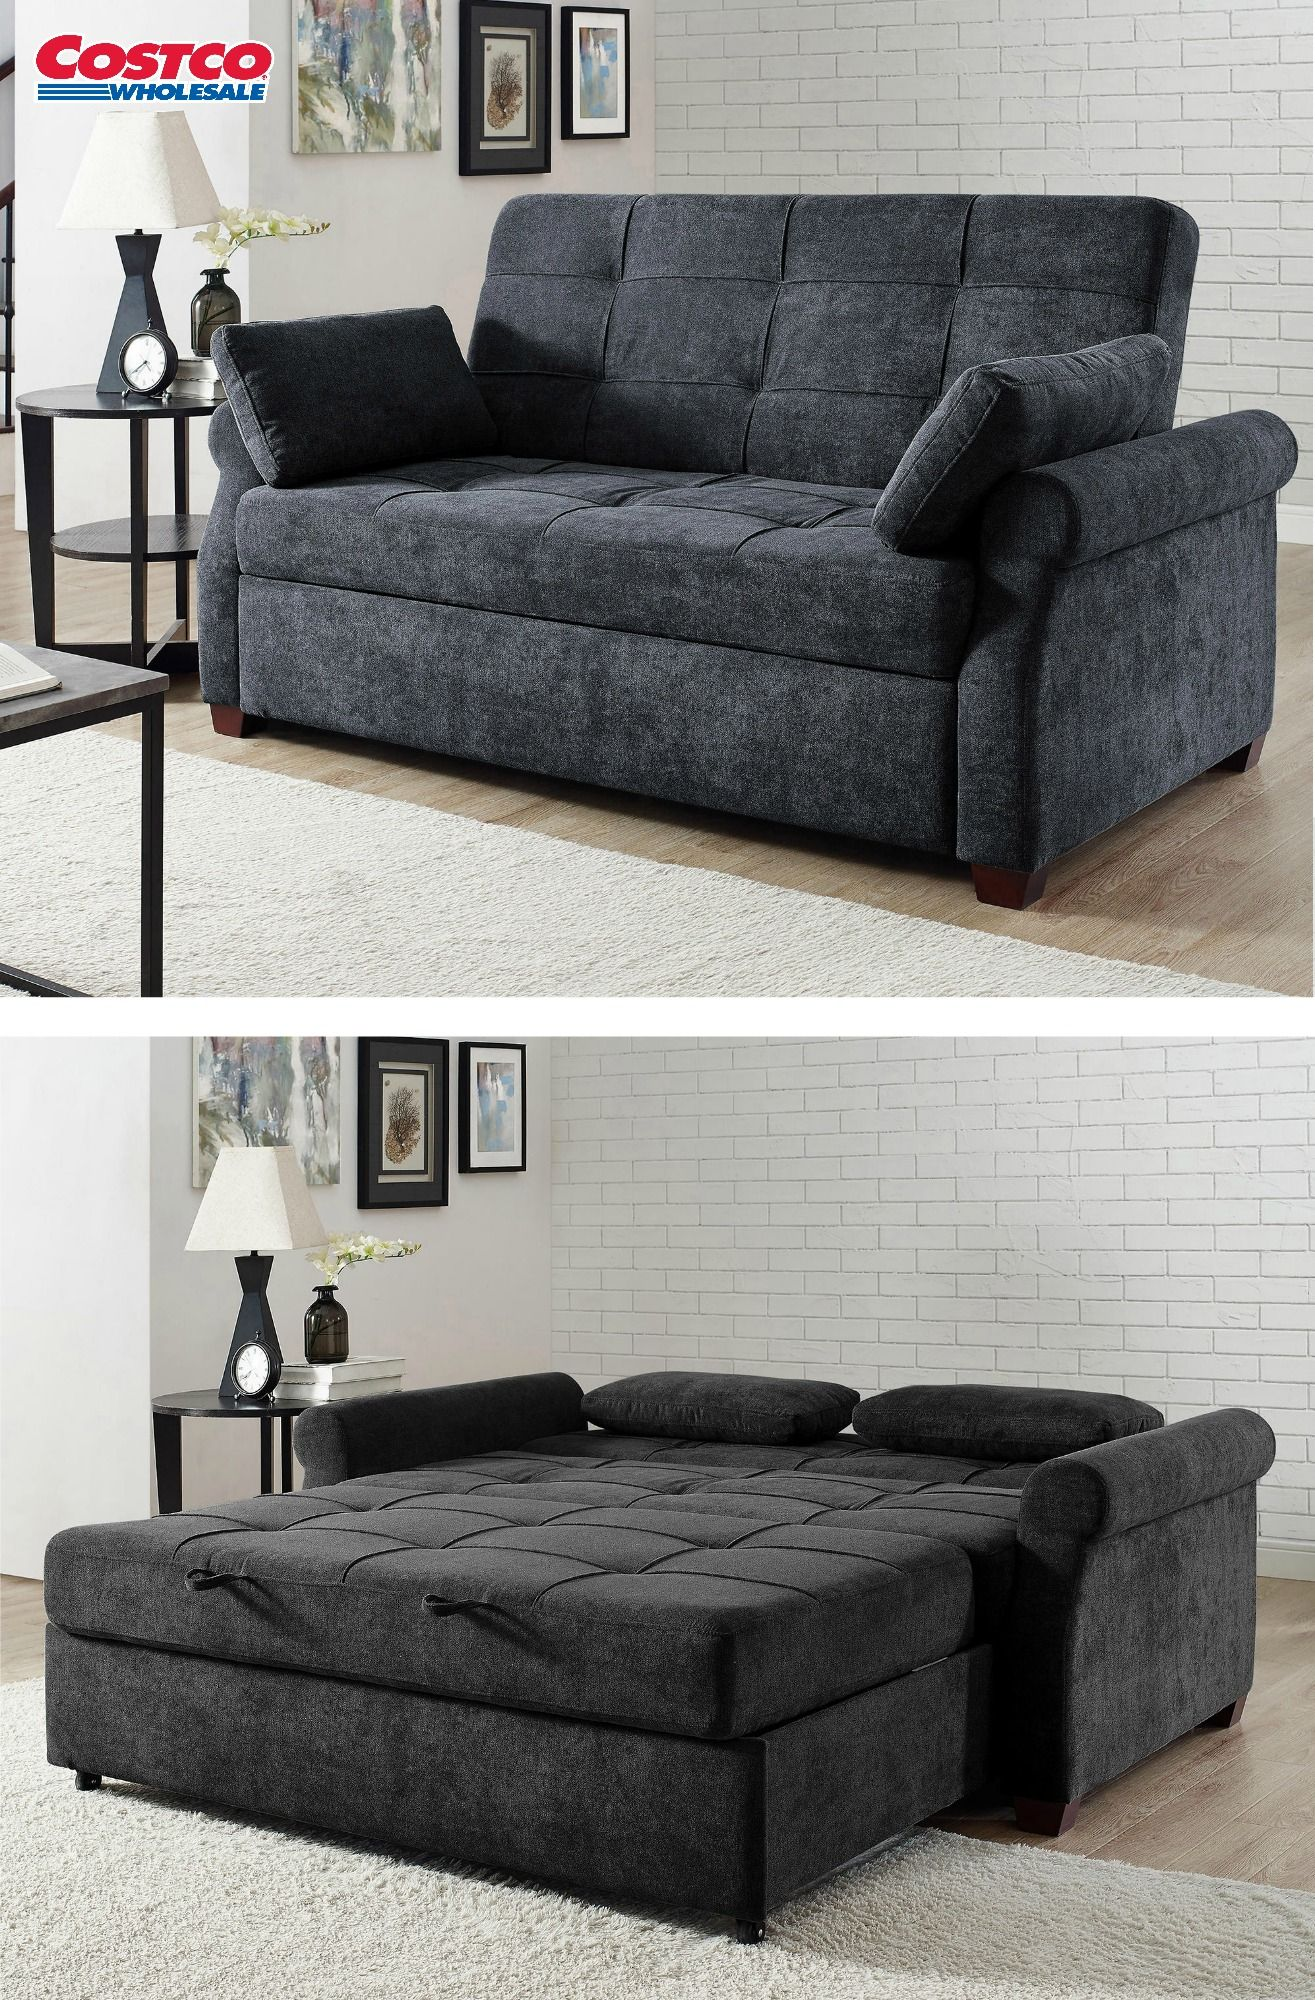 Bryson Beautyrest Fabric Queen Sleeper Sofa Www